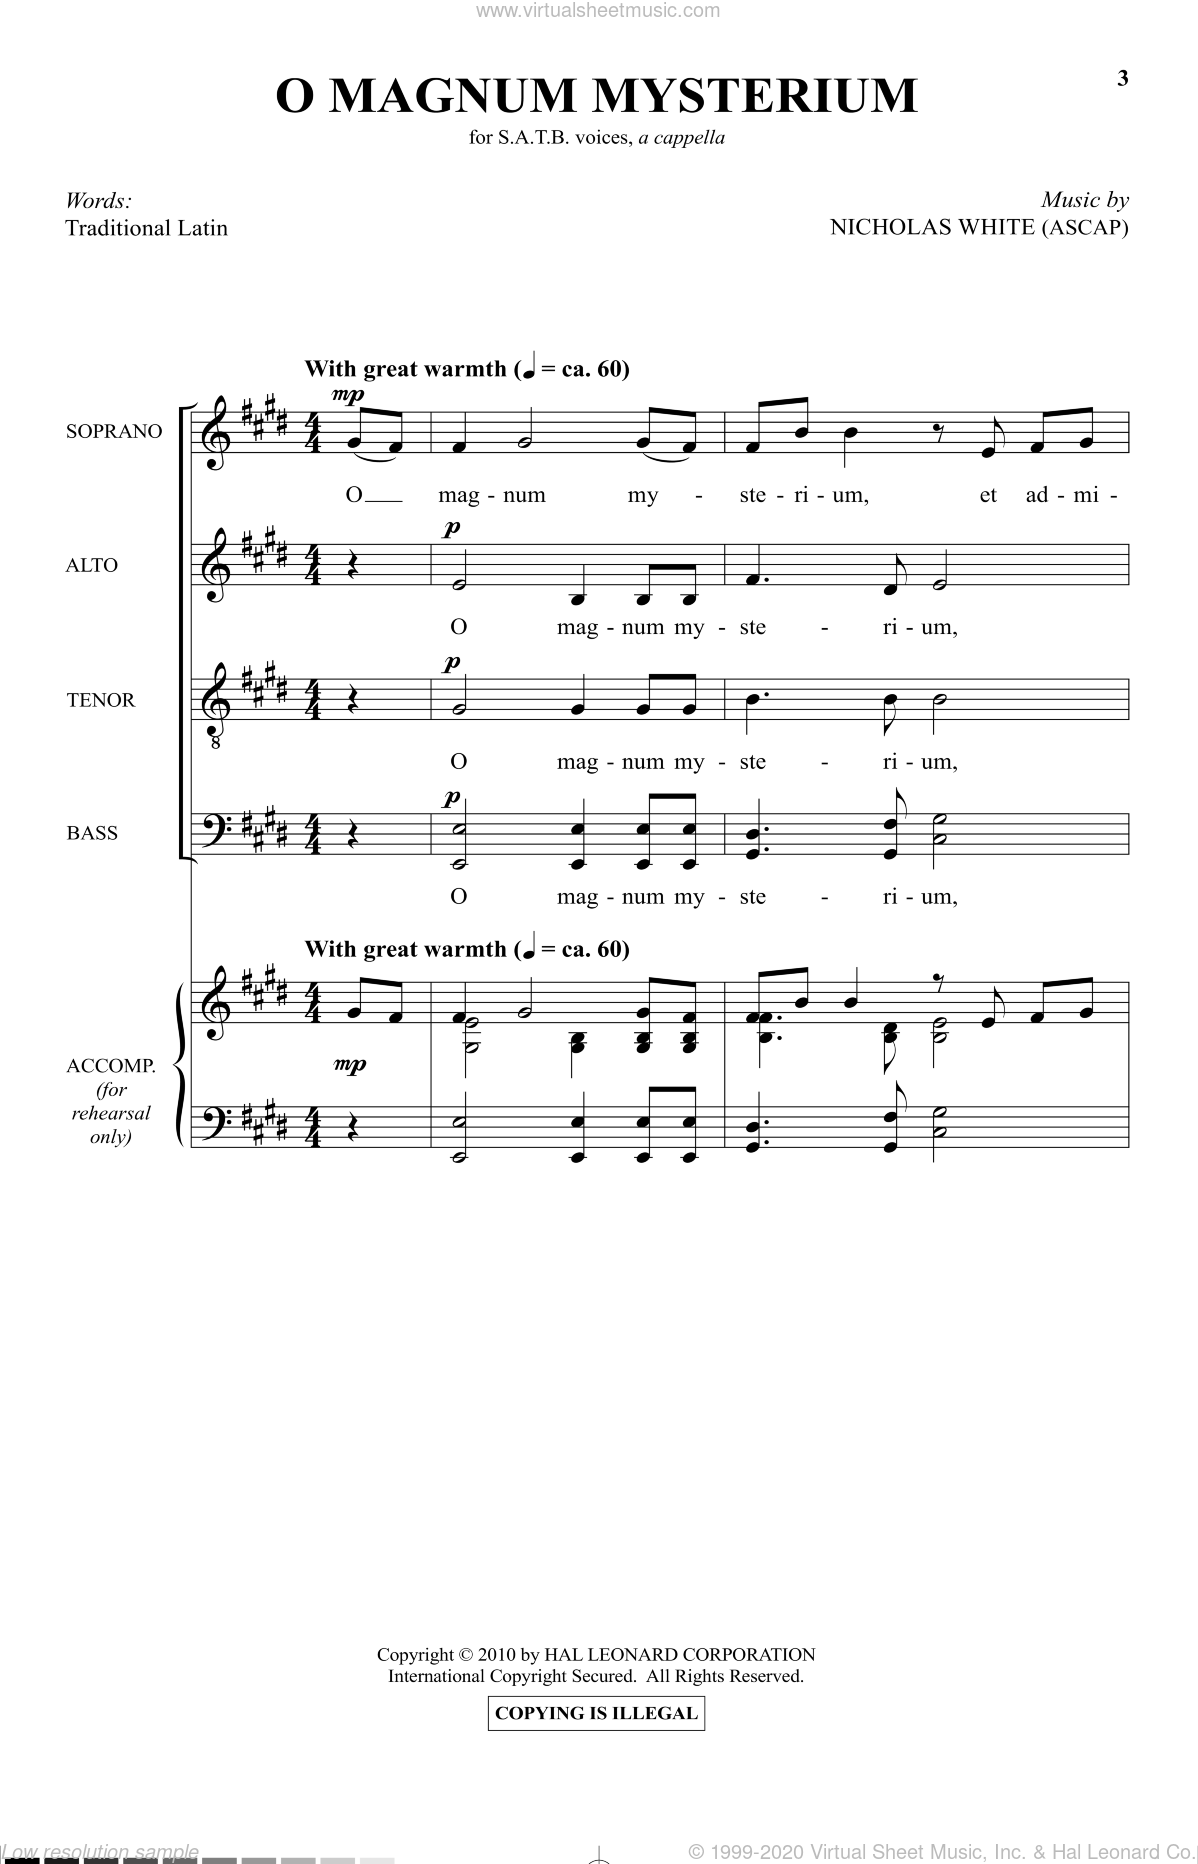 O Magnum Mysterium sheet music for choir and piano (SATB) by Nicholas White